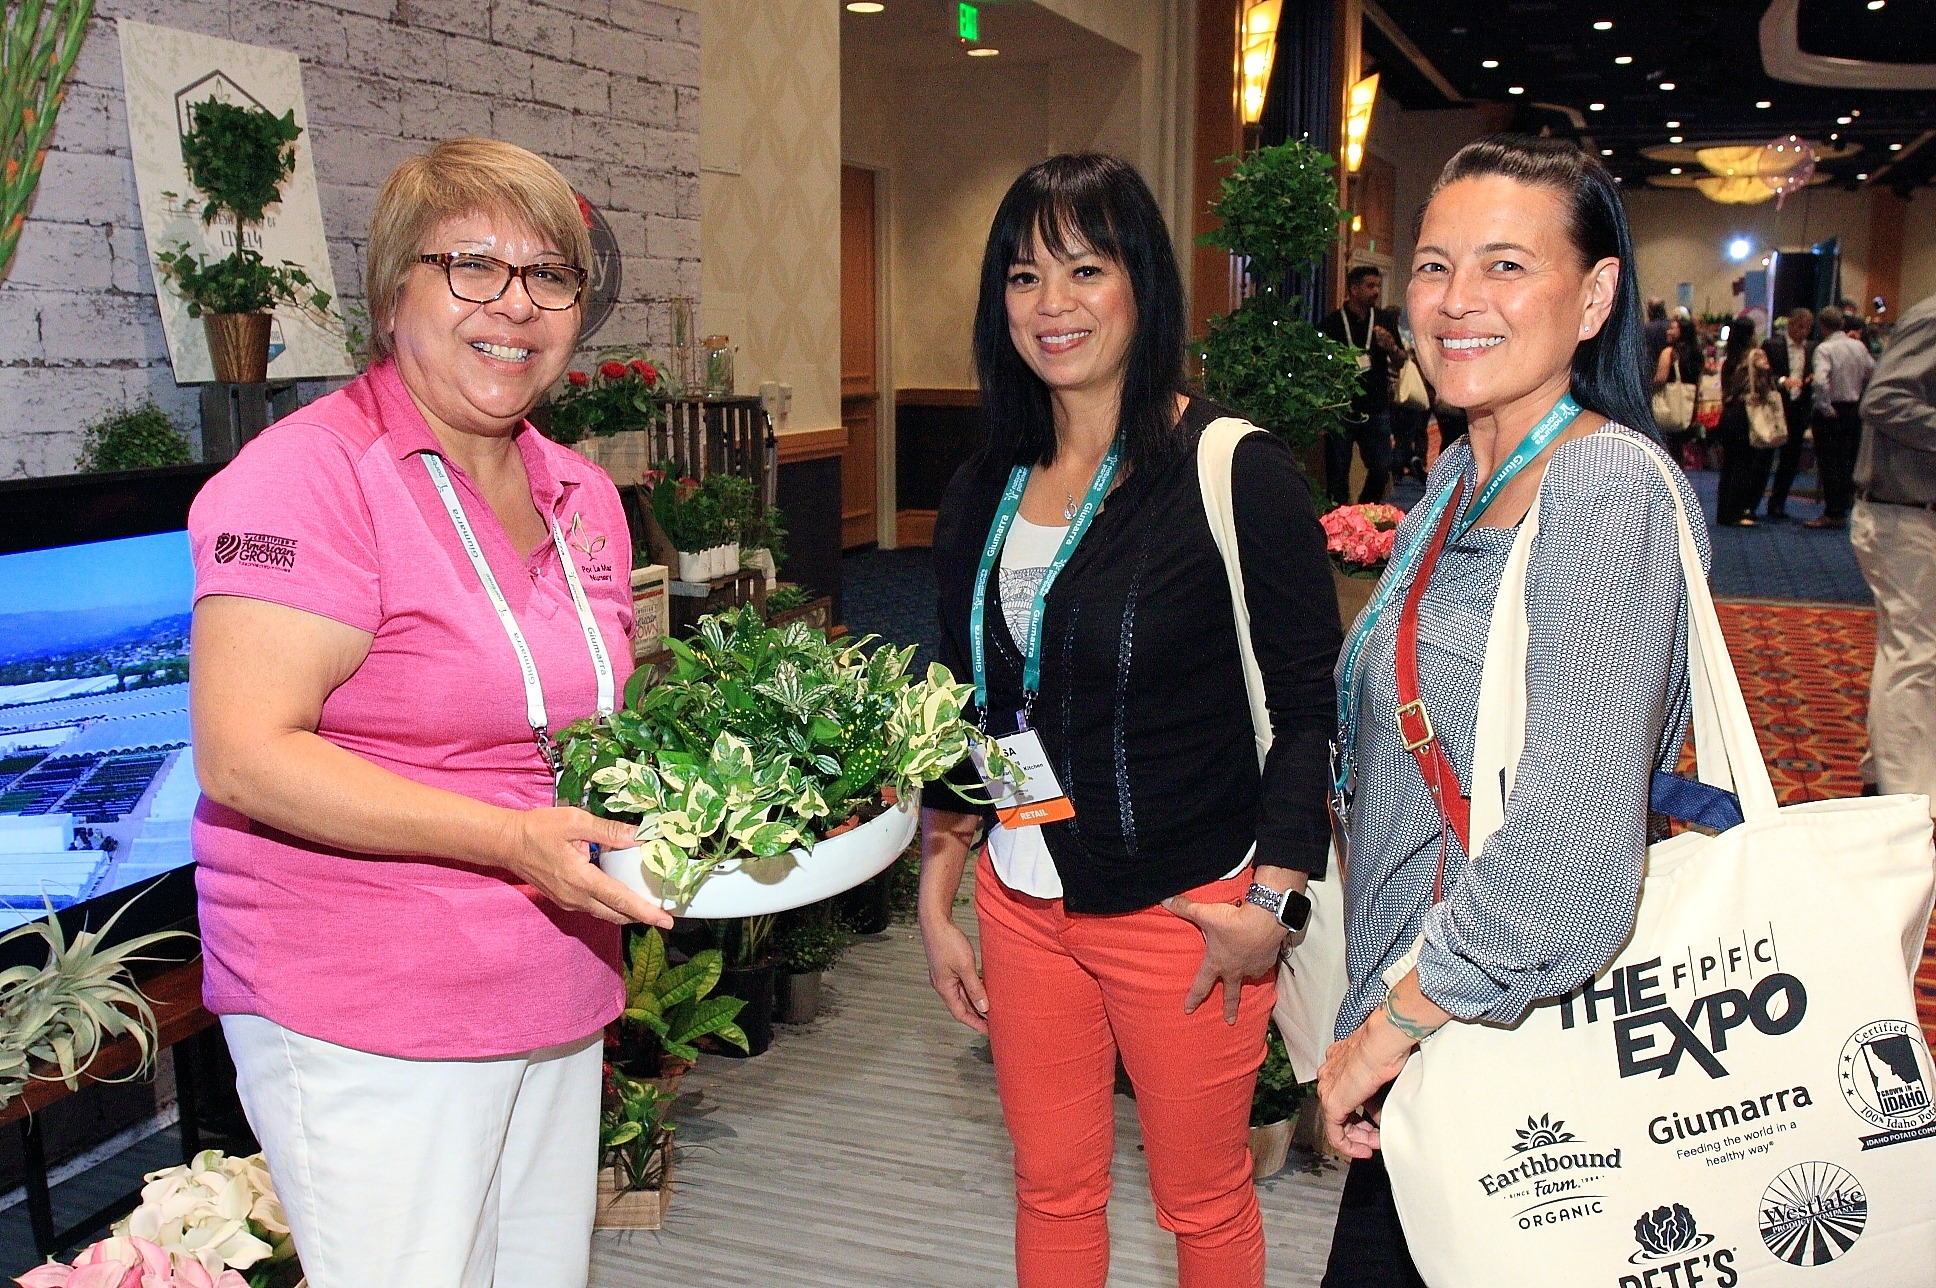 Tish Martinez from Por La Mar Nursery with Rosa Tong and Stacey Iturzaetz from Mother's Market & Kitchen